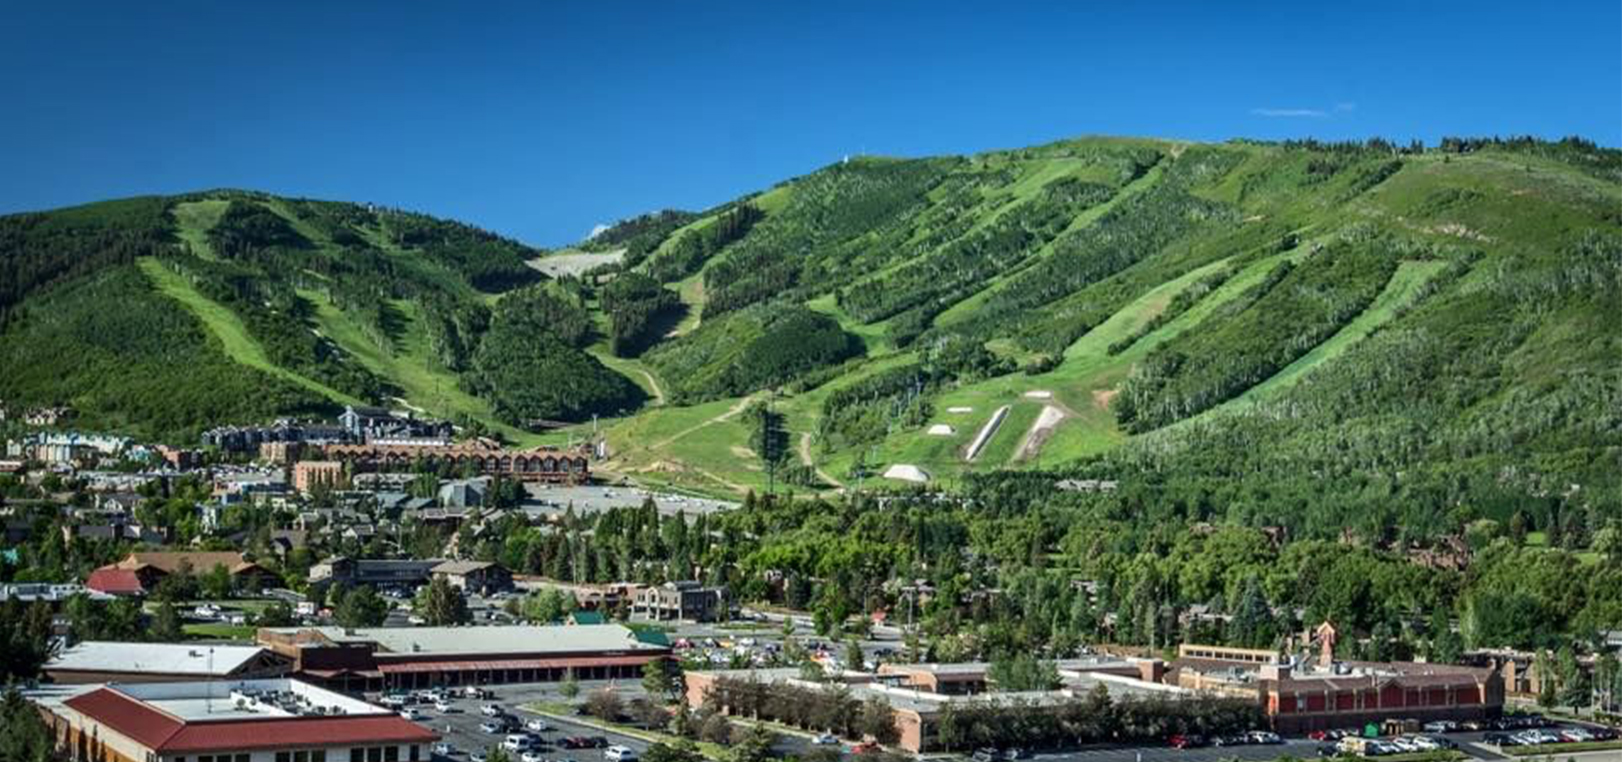 Park City/Deer Valley